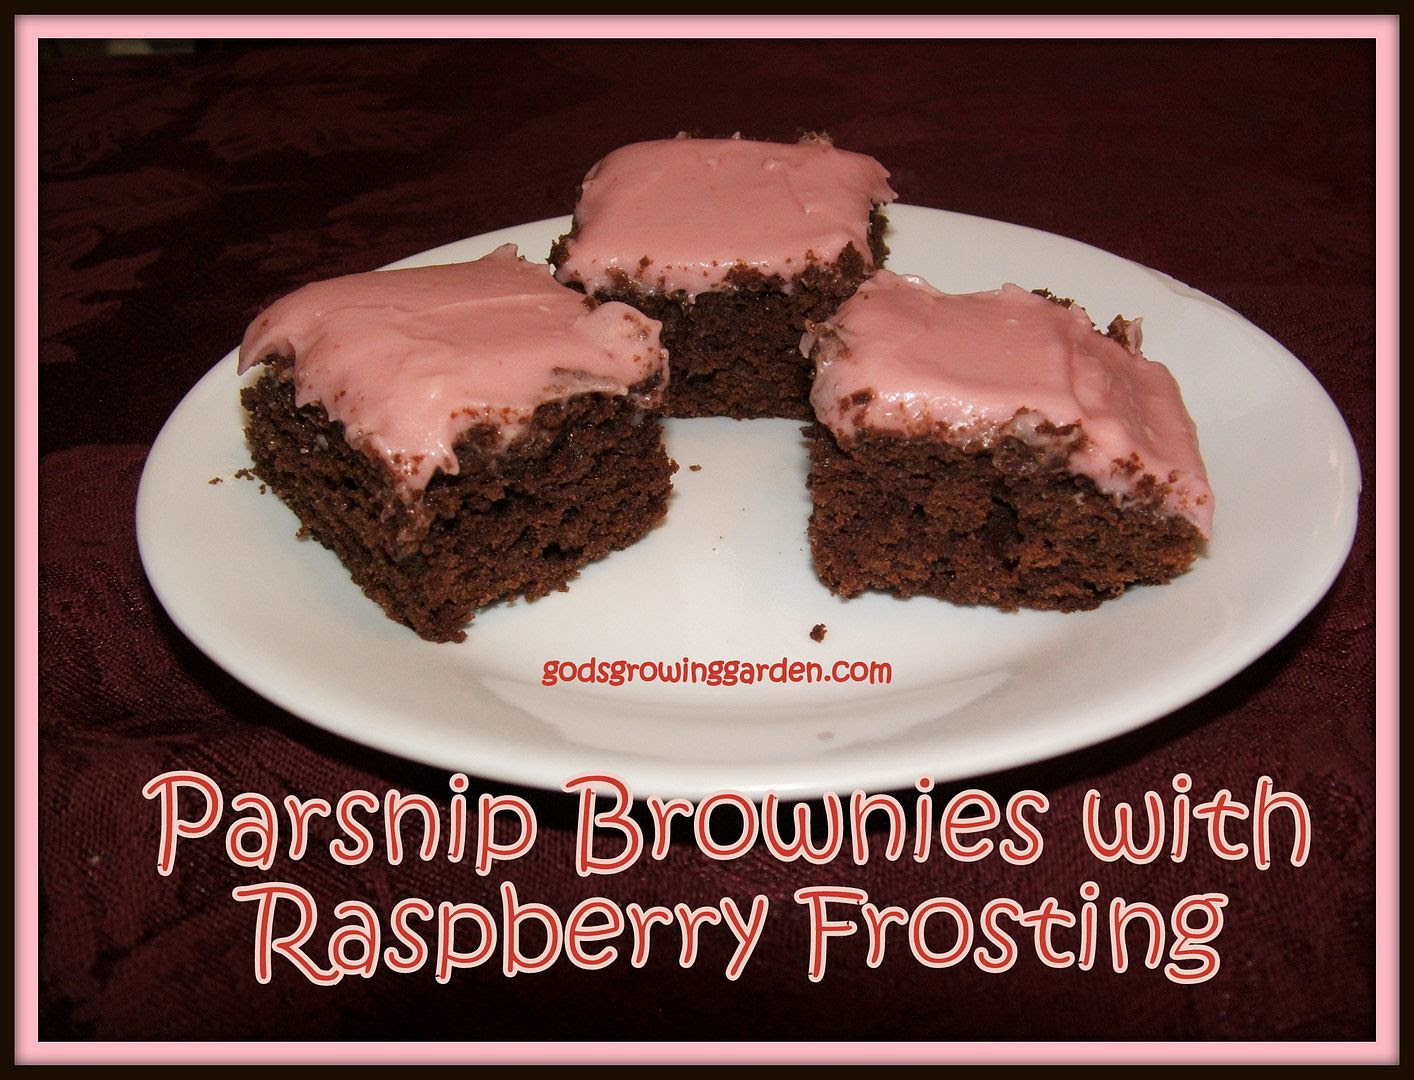 Parsnip Brownies with Rasp, by Angie Ouellette-Tower for godsgrowinggarden.com